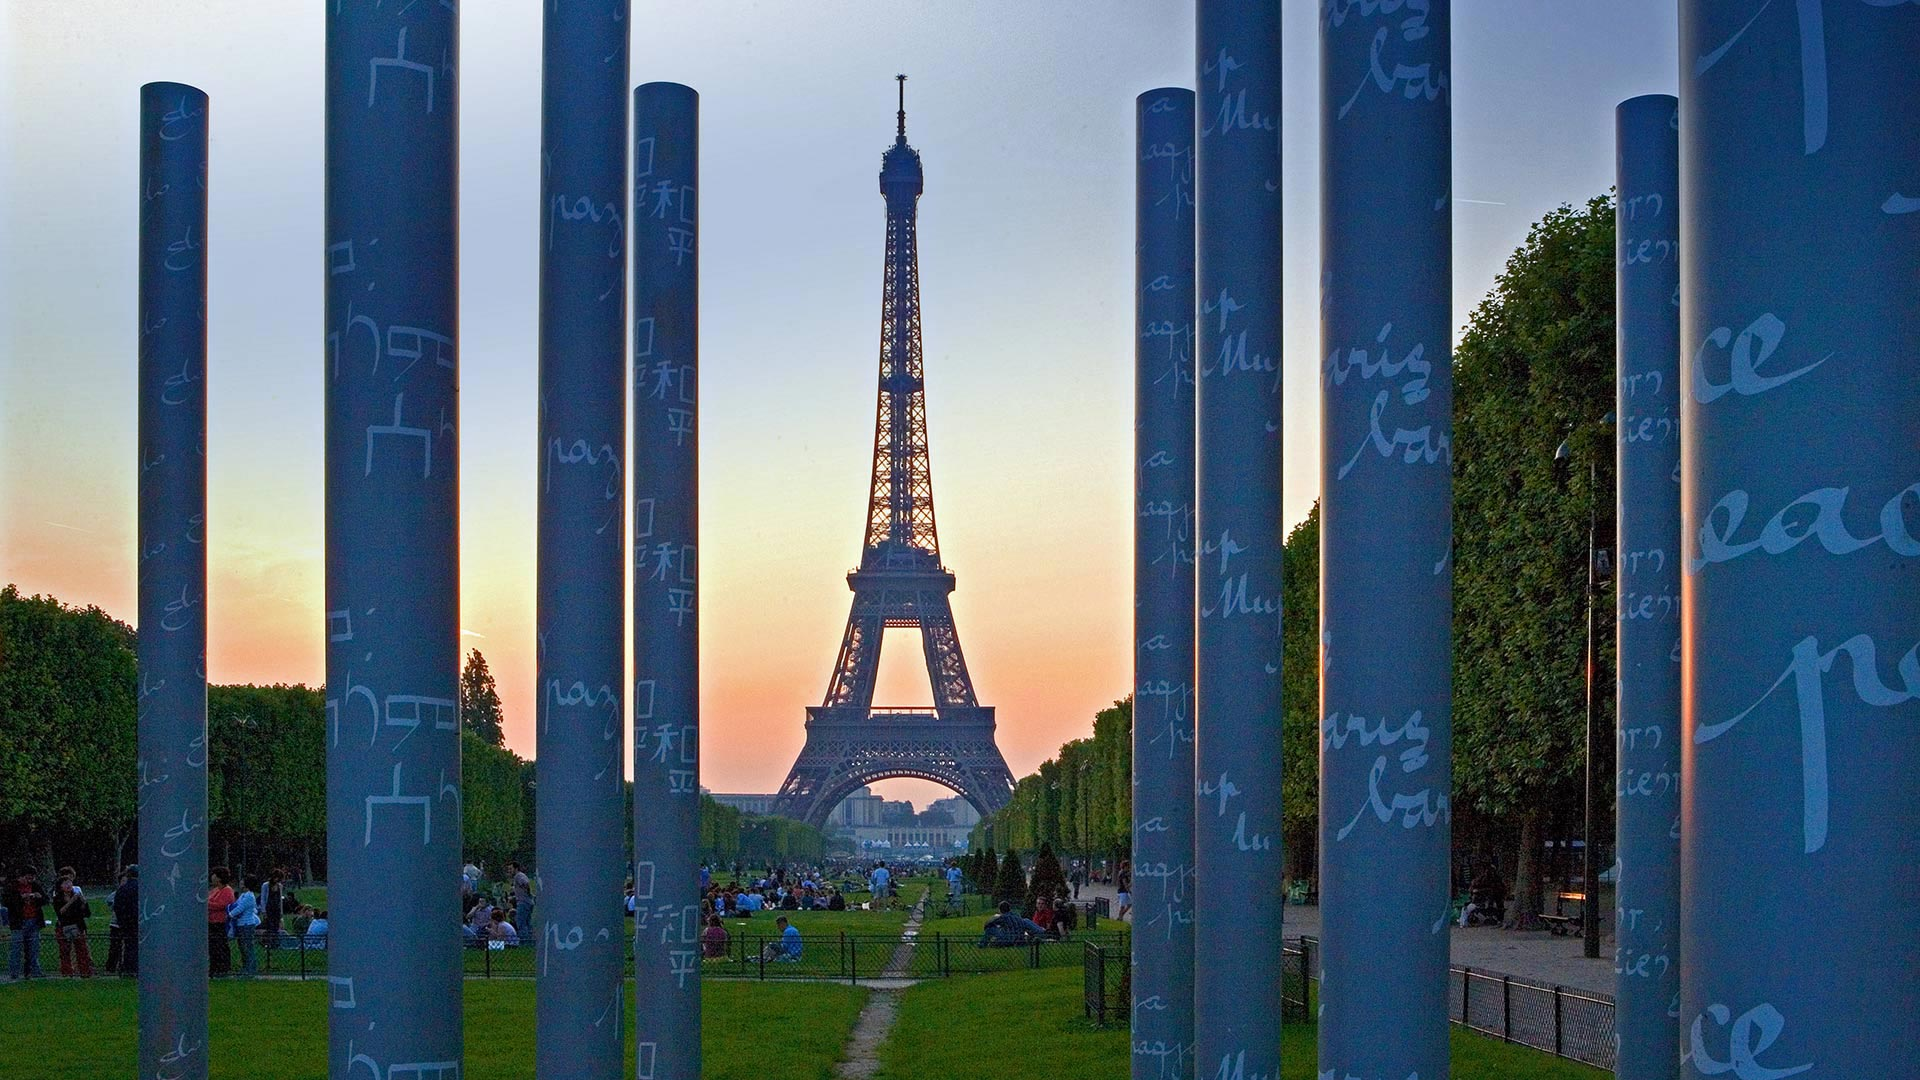 'The Wall for Peace' and the Eiffel Tower in Paris for the International Day of Peace (© Prisma by Dukas Presseagentur GmbH/Alamy)